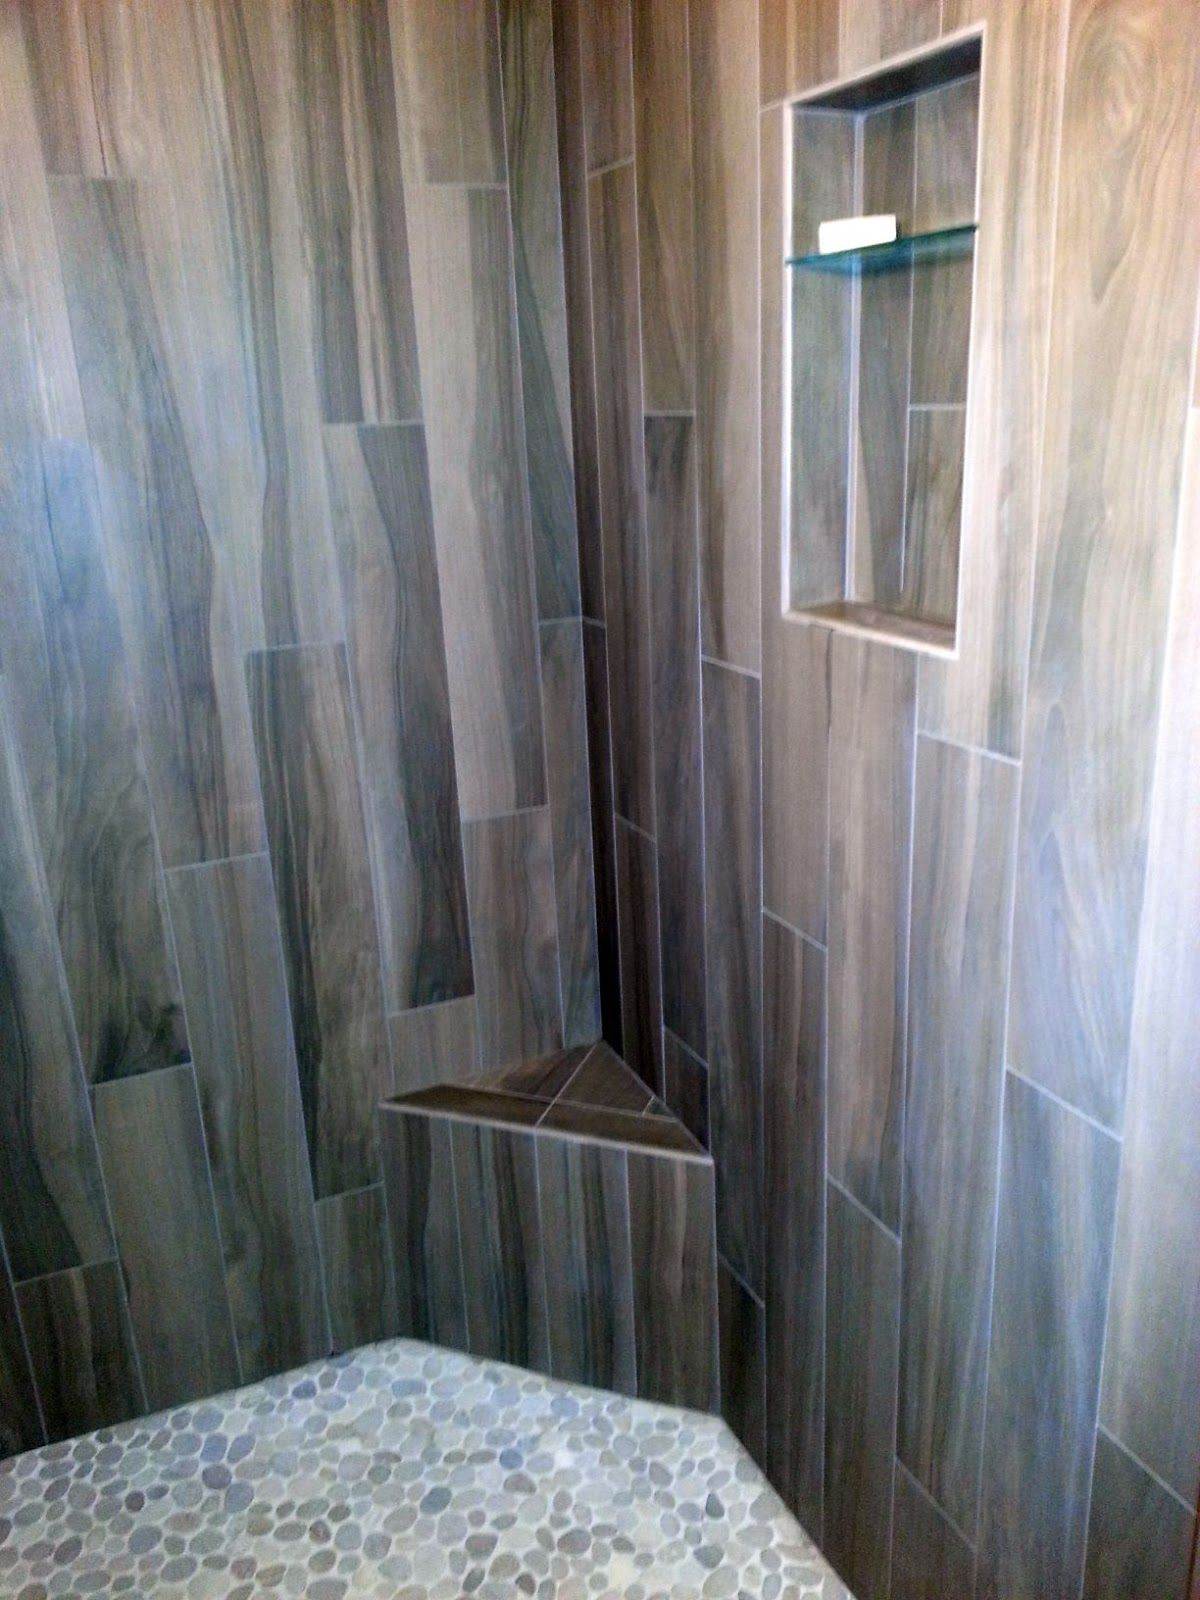 Light color wood tile with dark hardware and pebble floor - Light Color Wood Tile With Dark Hardware And Pebble Floor Shower